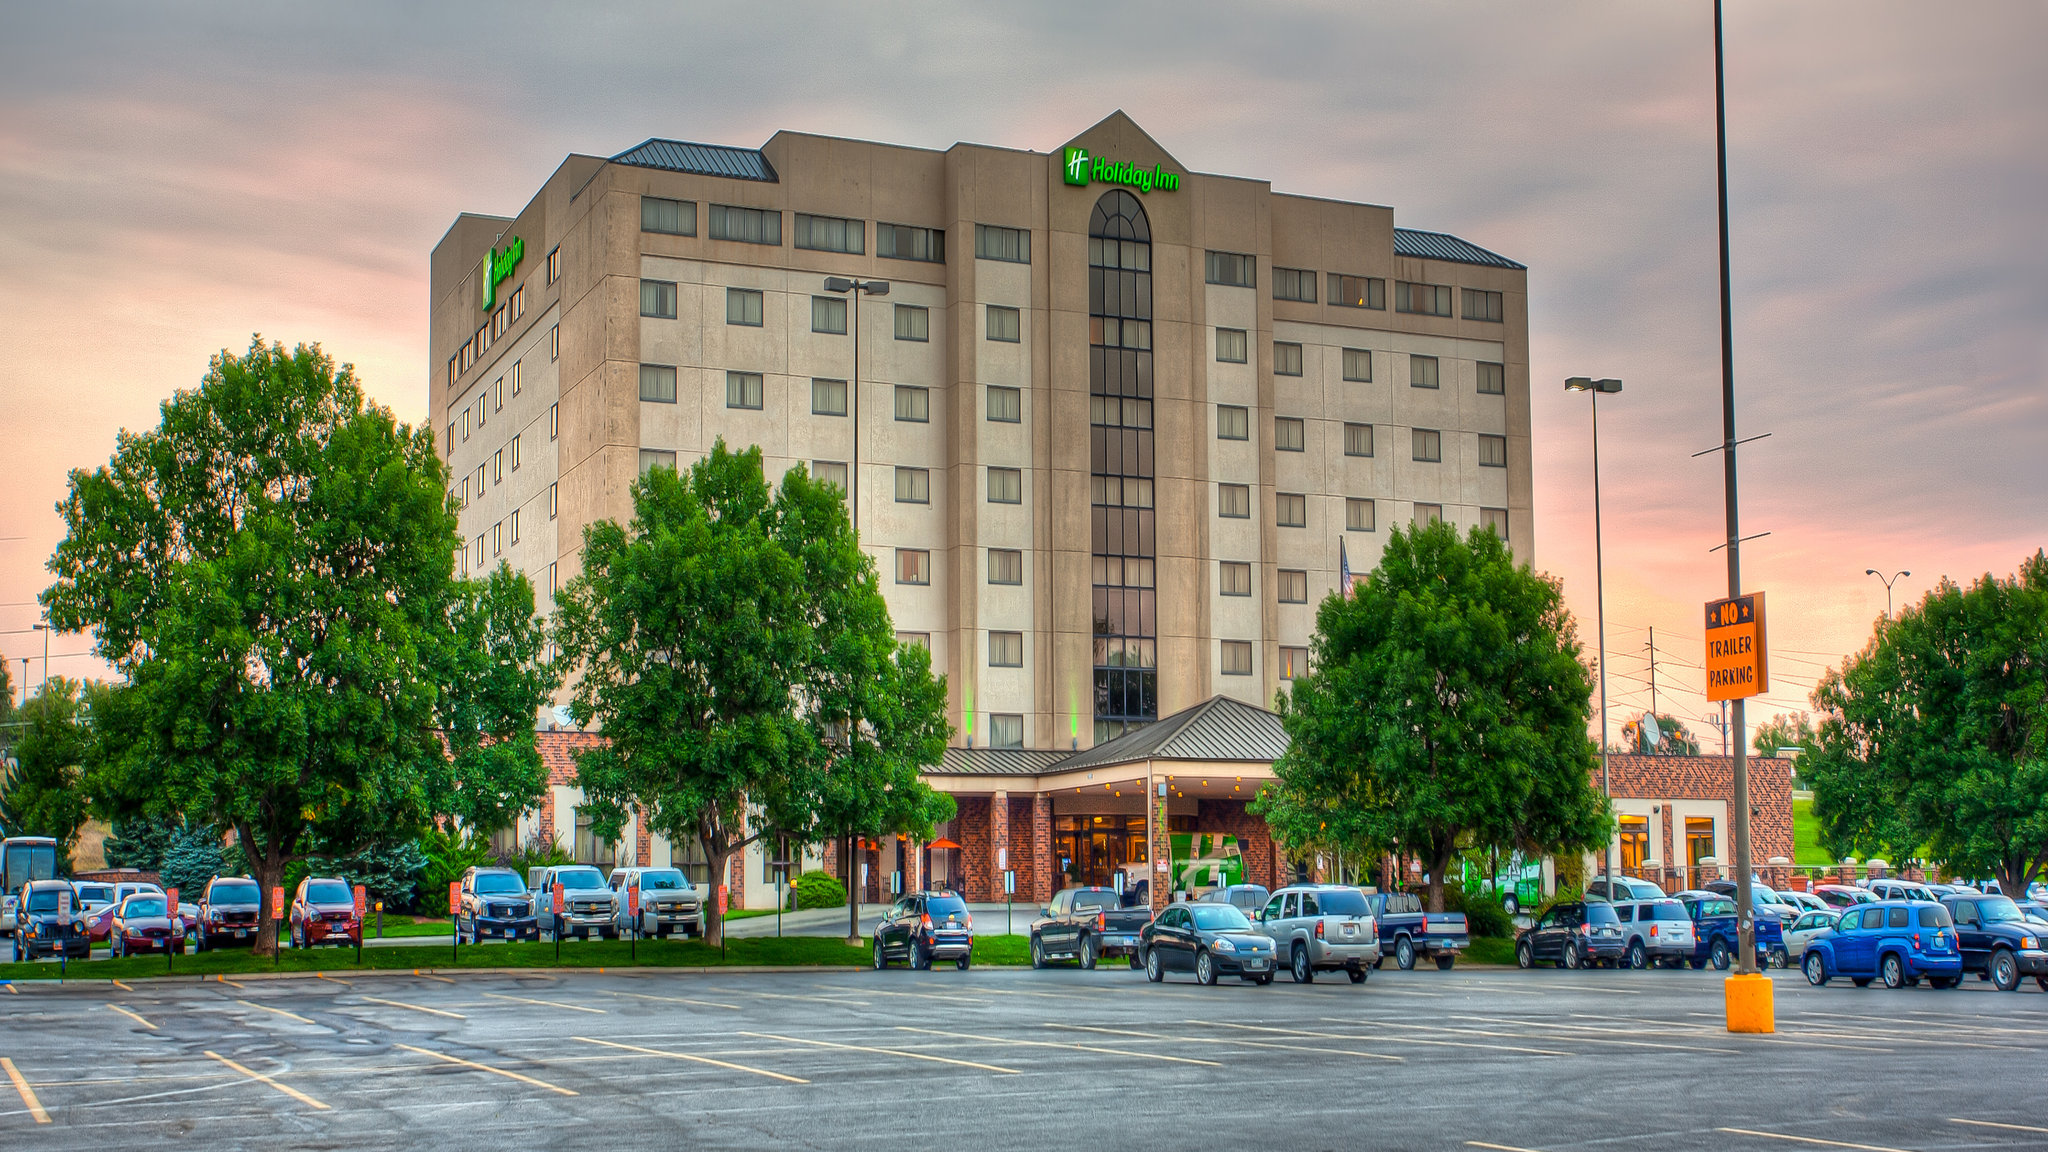 Sophisticated & Convenient – Holiday Inn Rushmore Plaza in Rapid City, SD